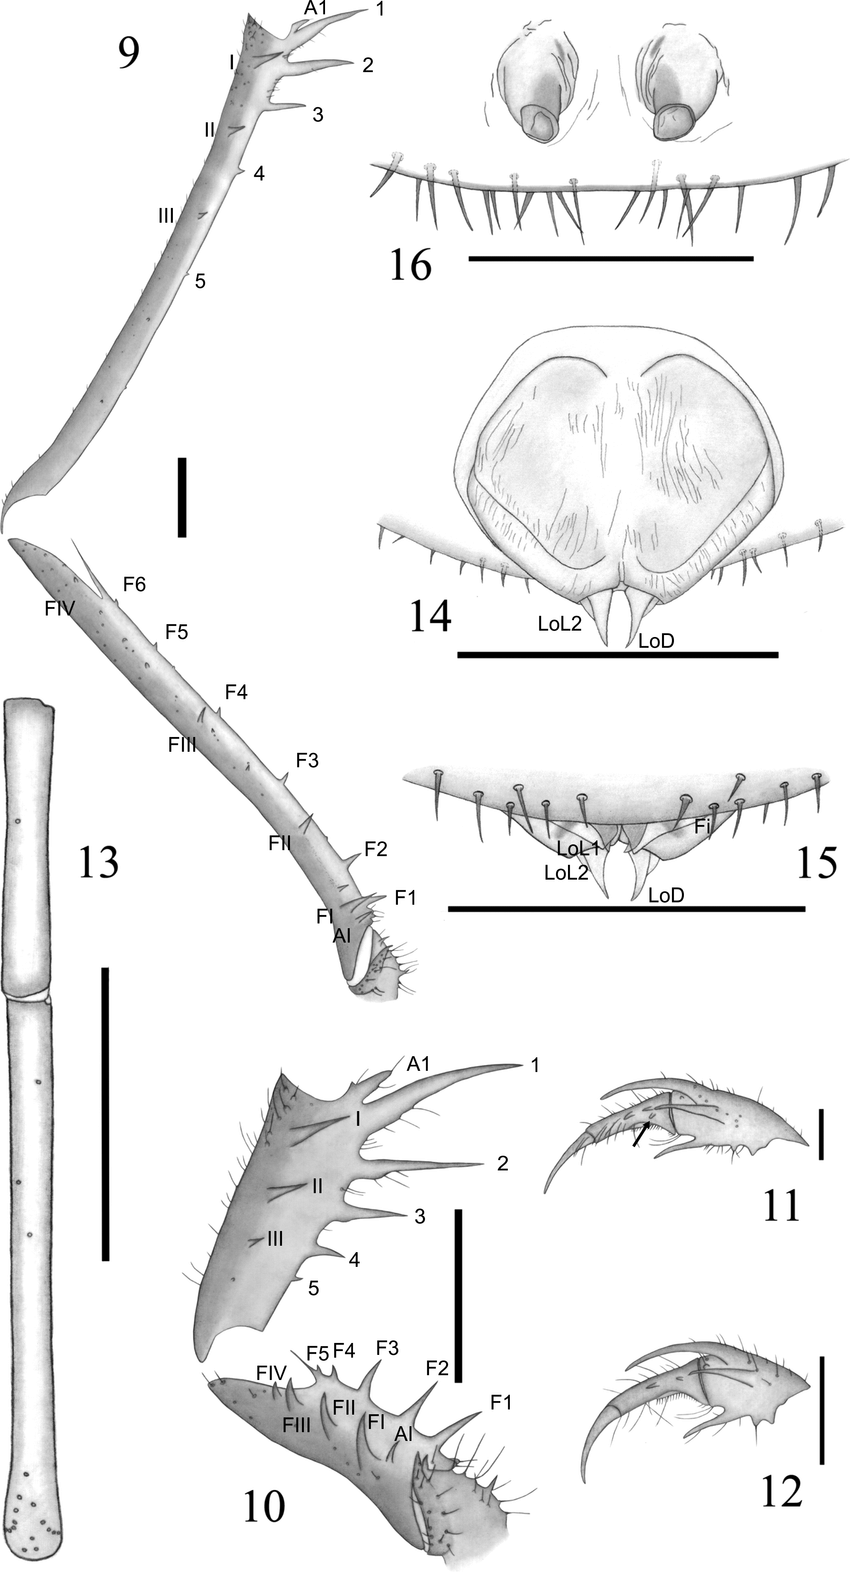 hight resolution of  charinus jibaossu new species 9 trochanter femur and tibia of the download scientific diagram